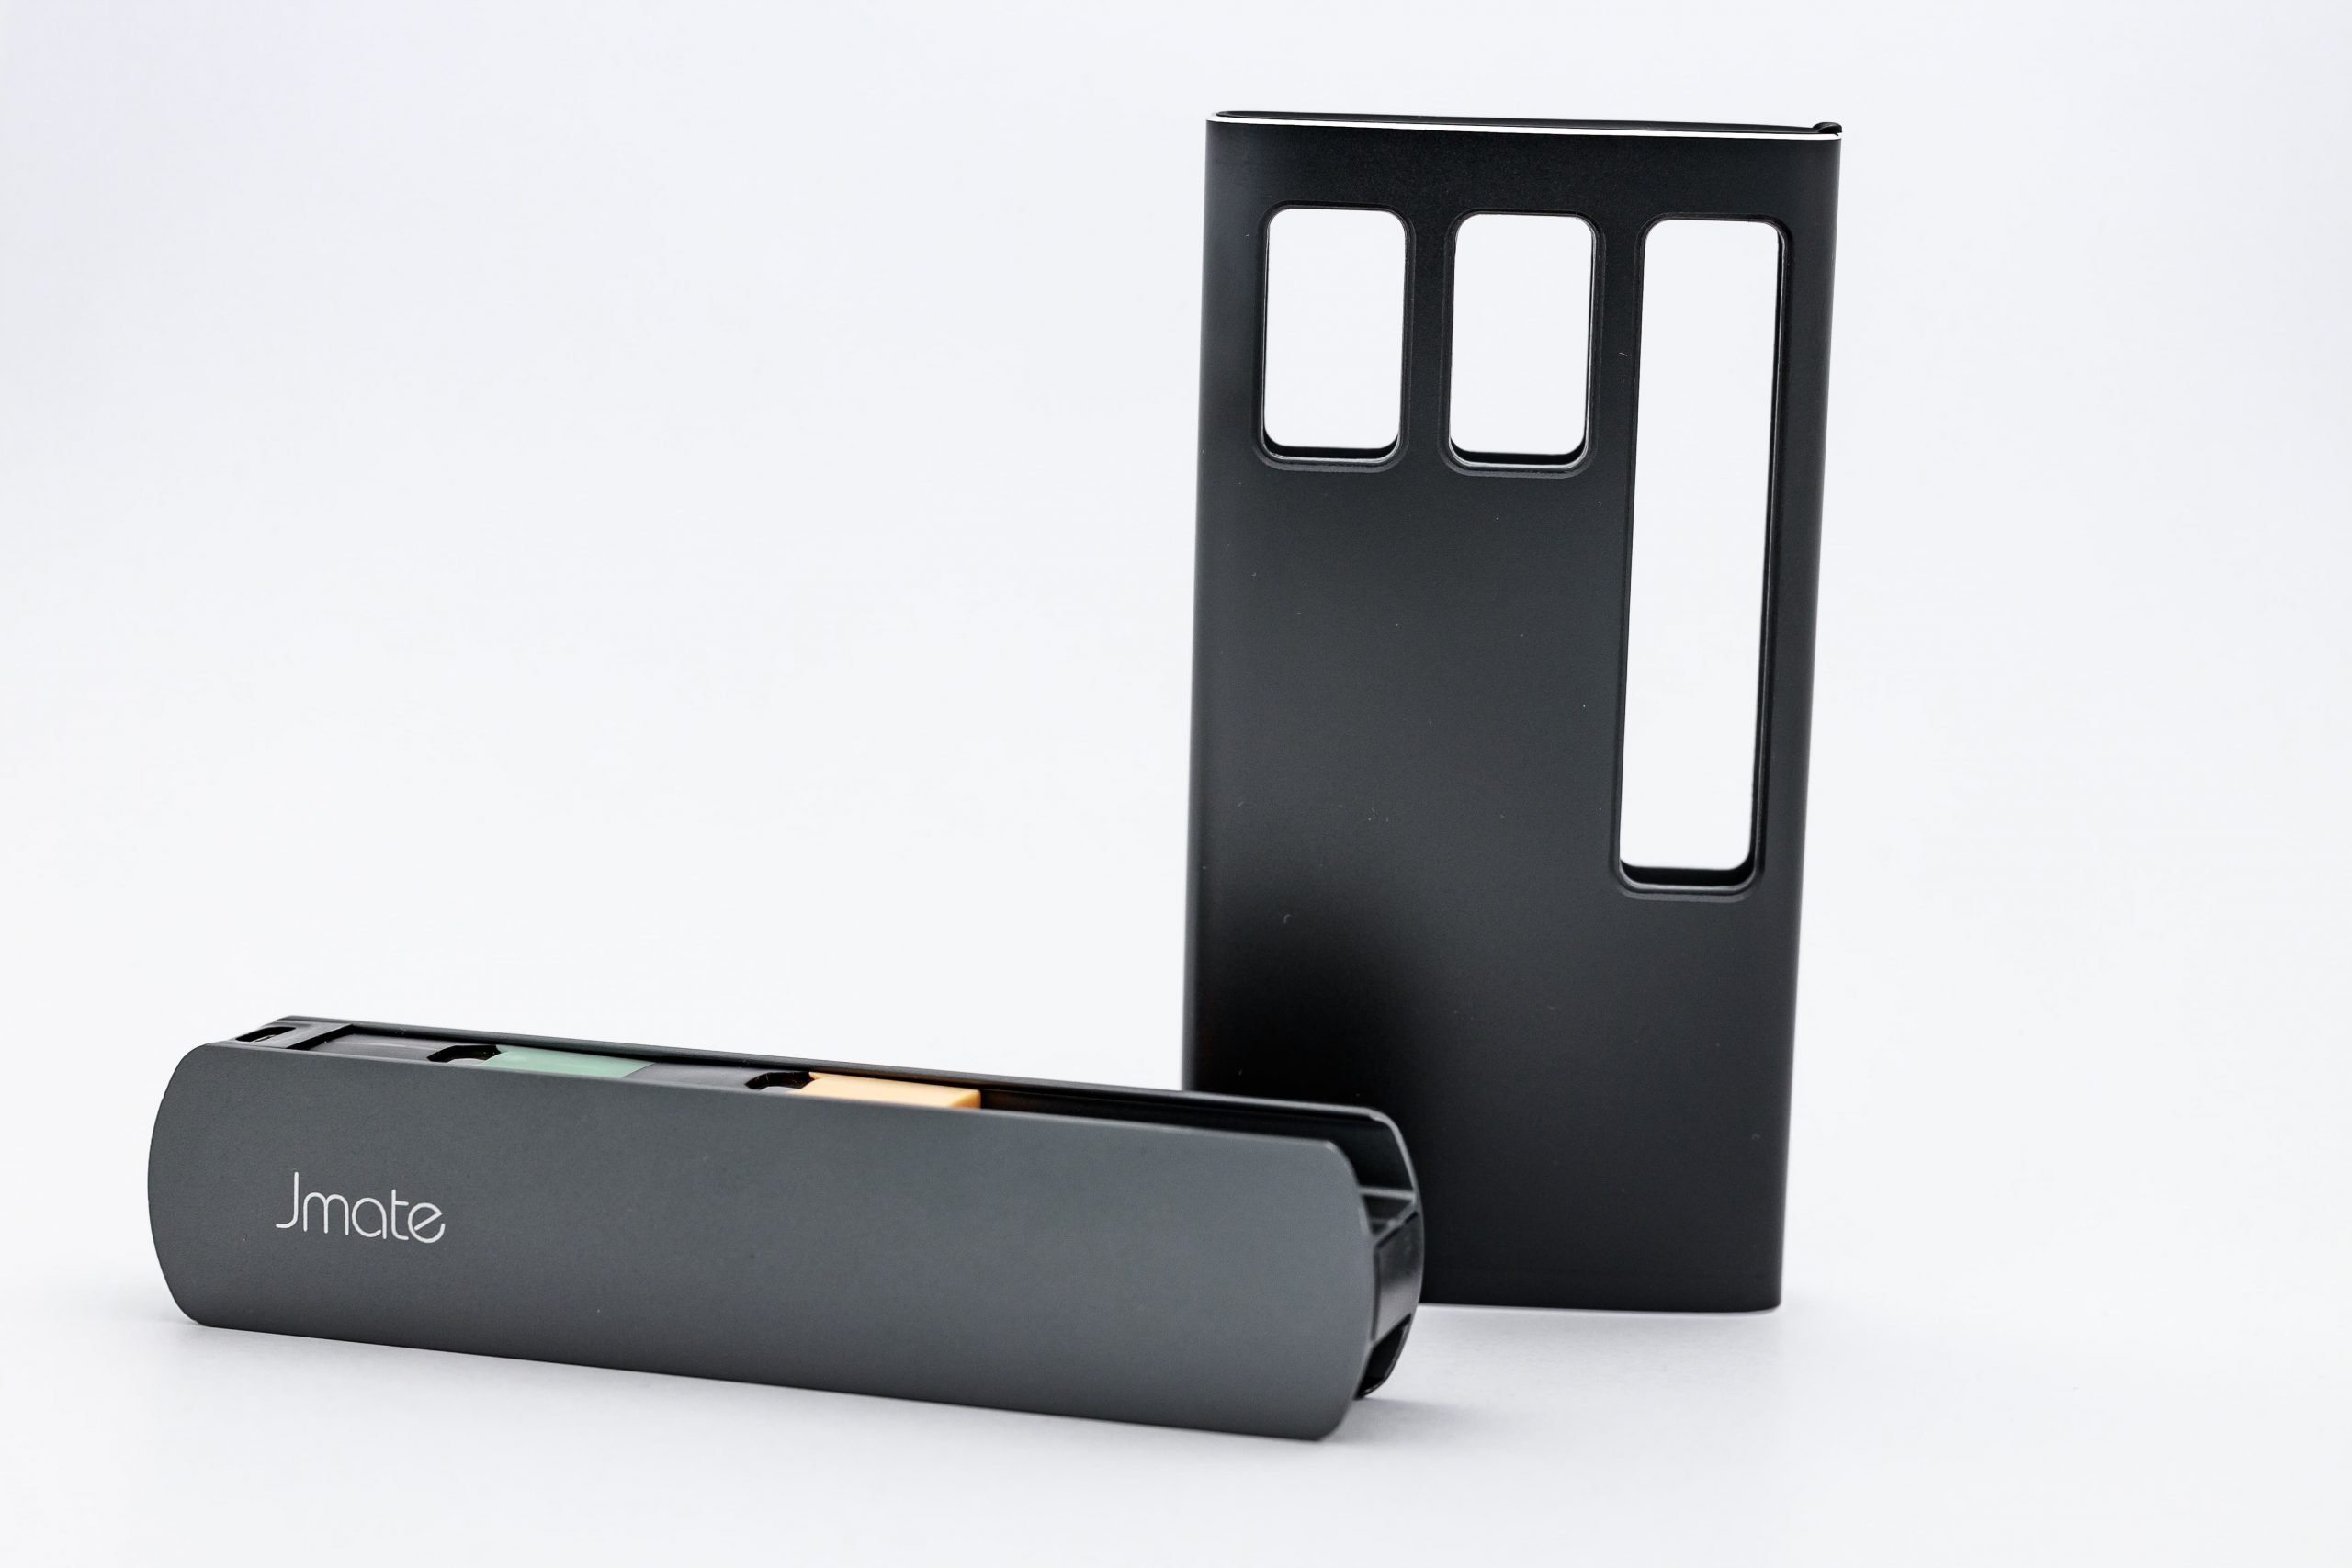 jmate juul charging case - image by vapingdaily